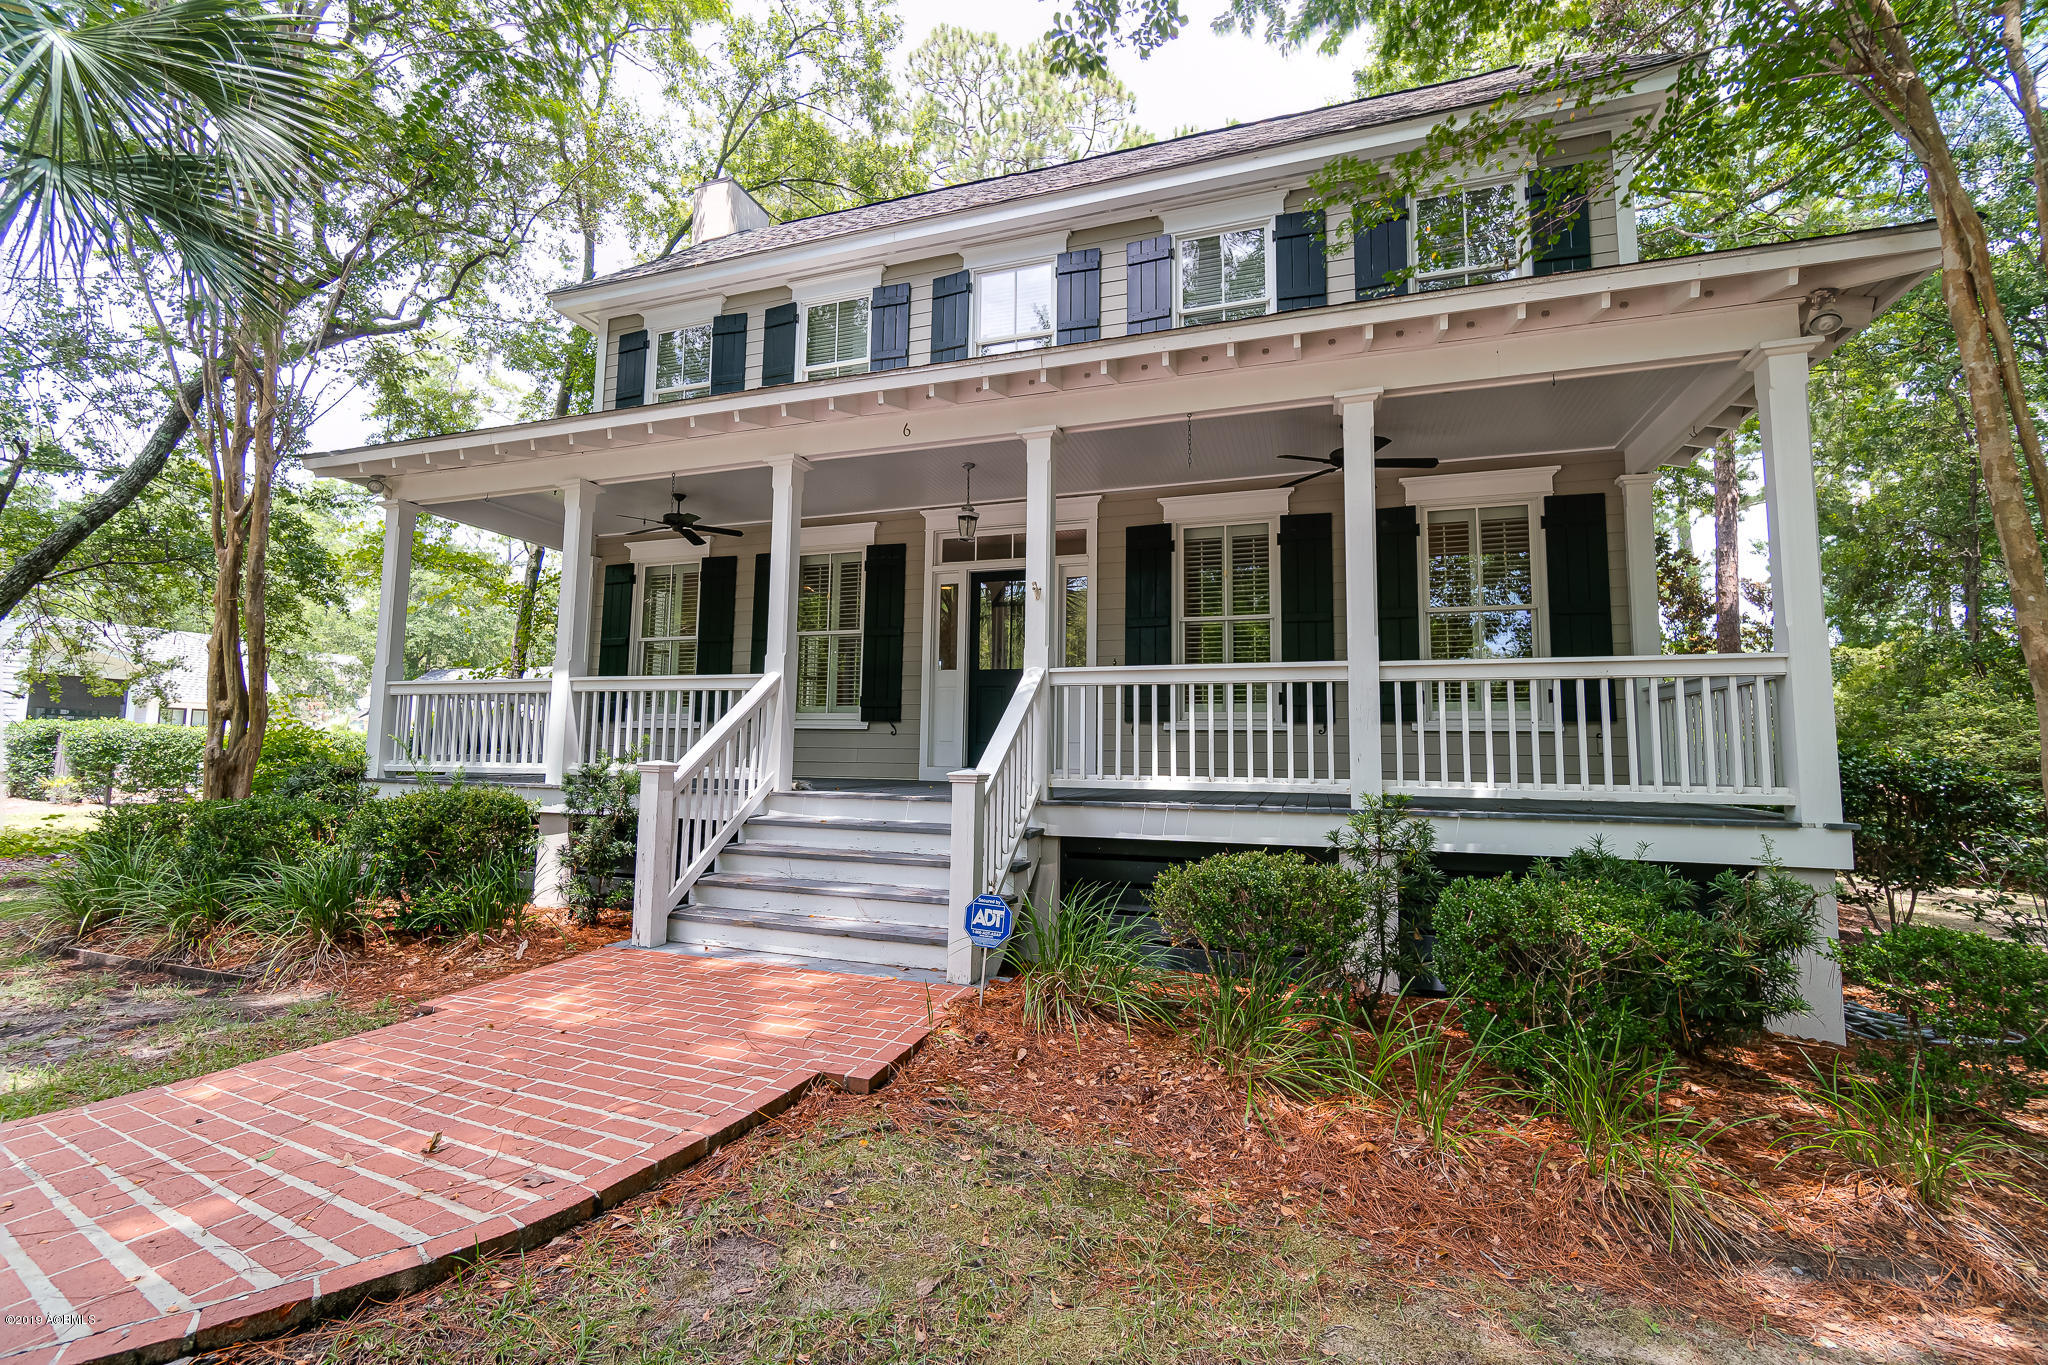 Photo of 6 Hayek Street, Beaufort, SC 29907